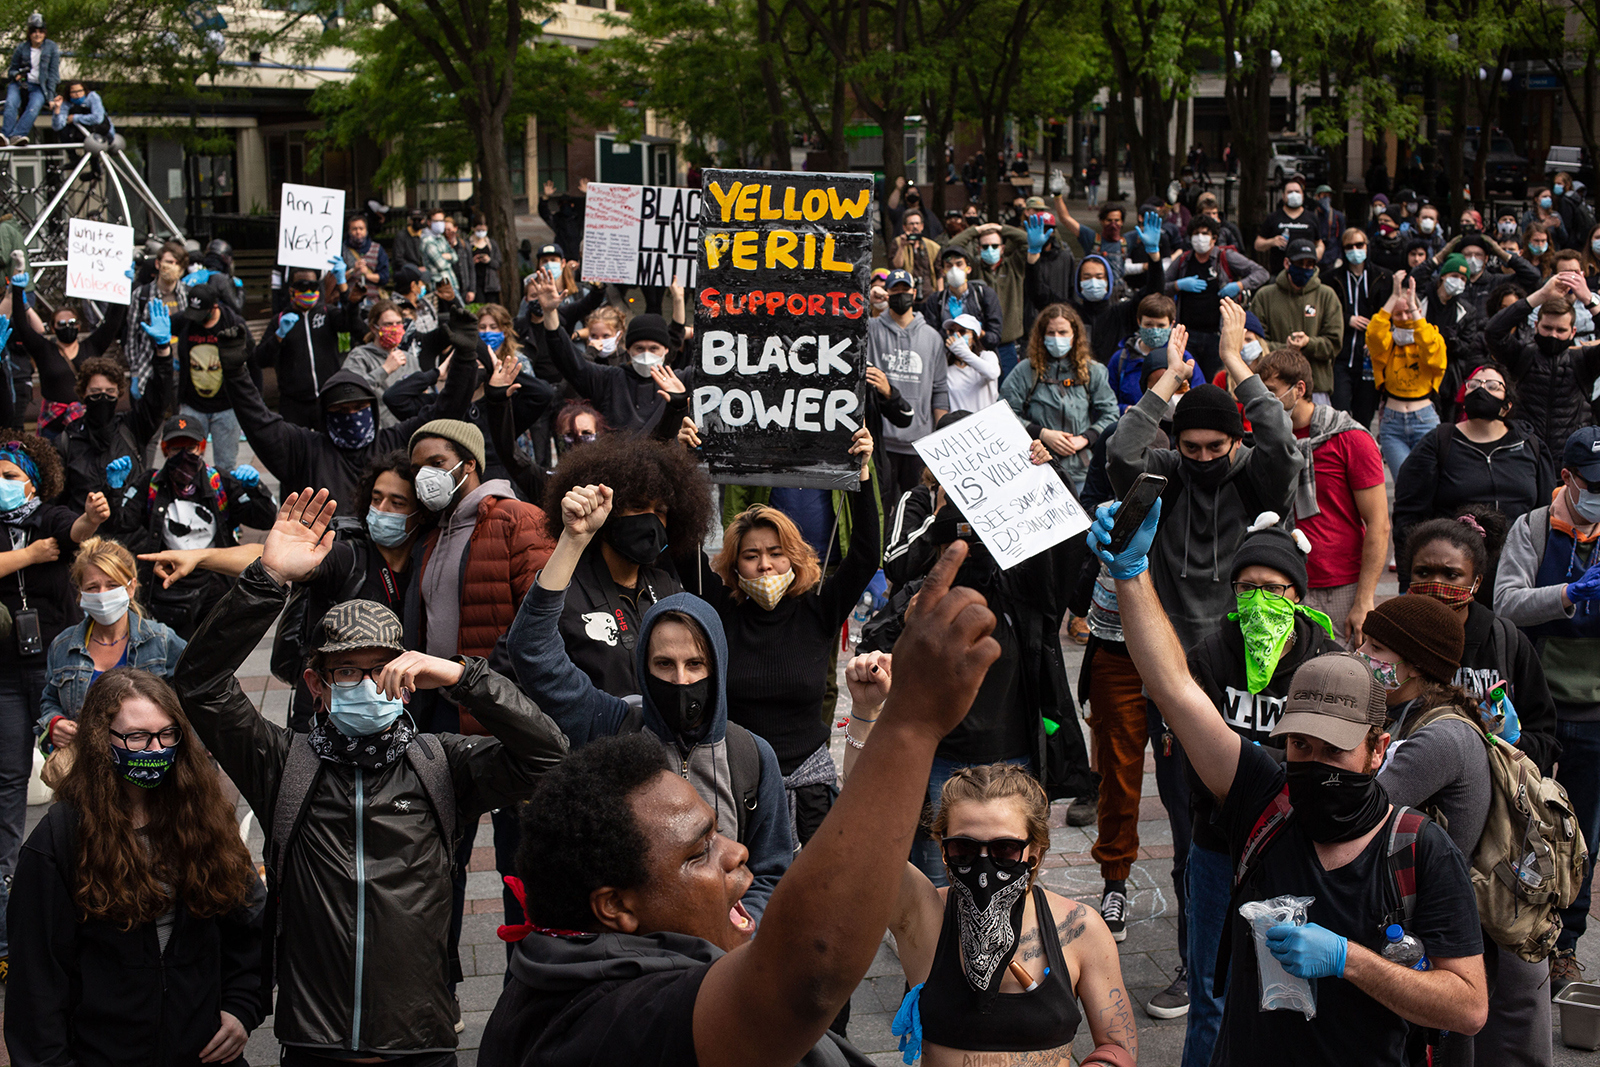 Demonstrators chant during a gathering on May 31, in Seattle.